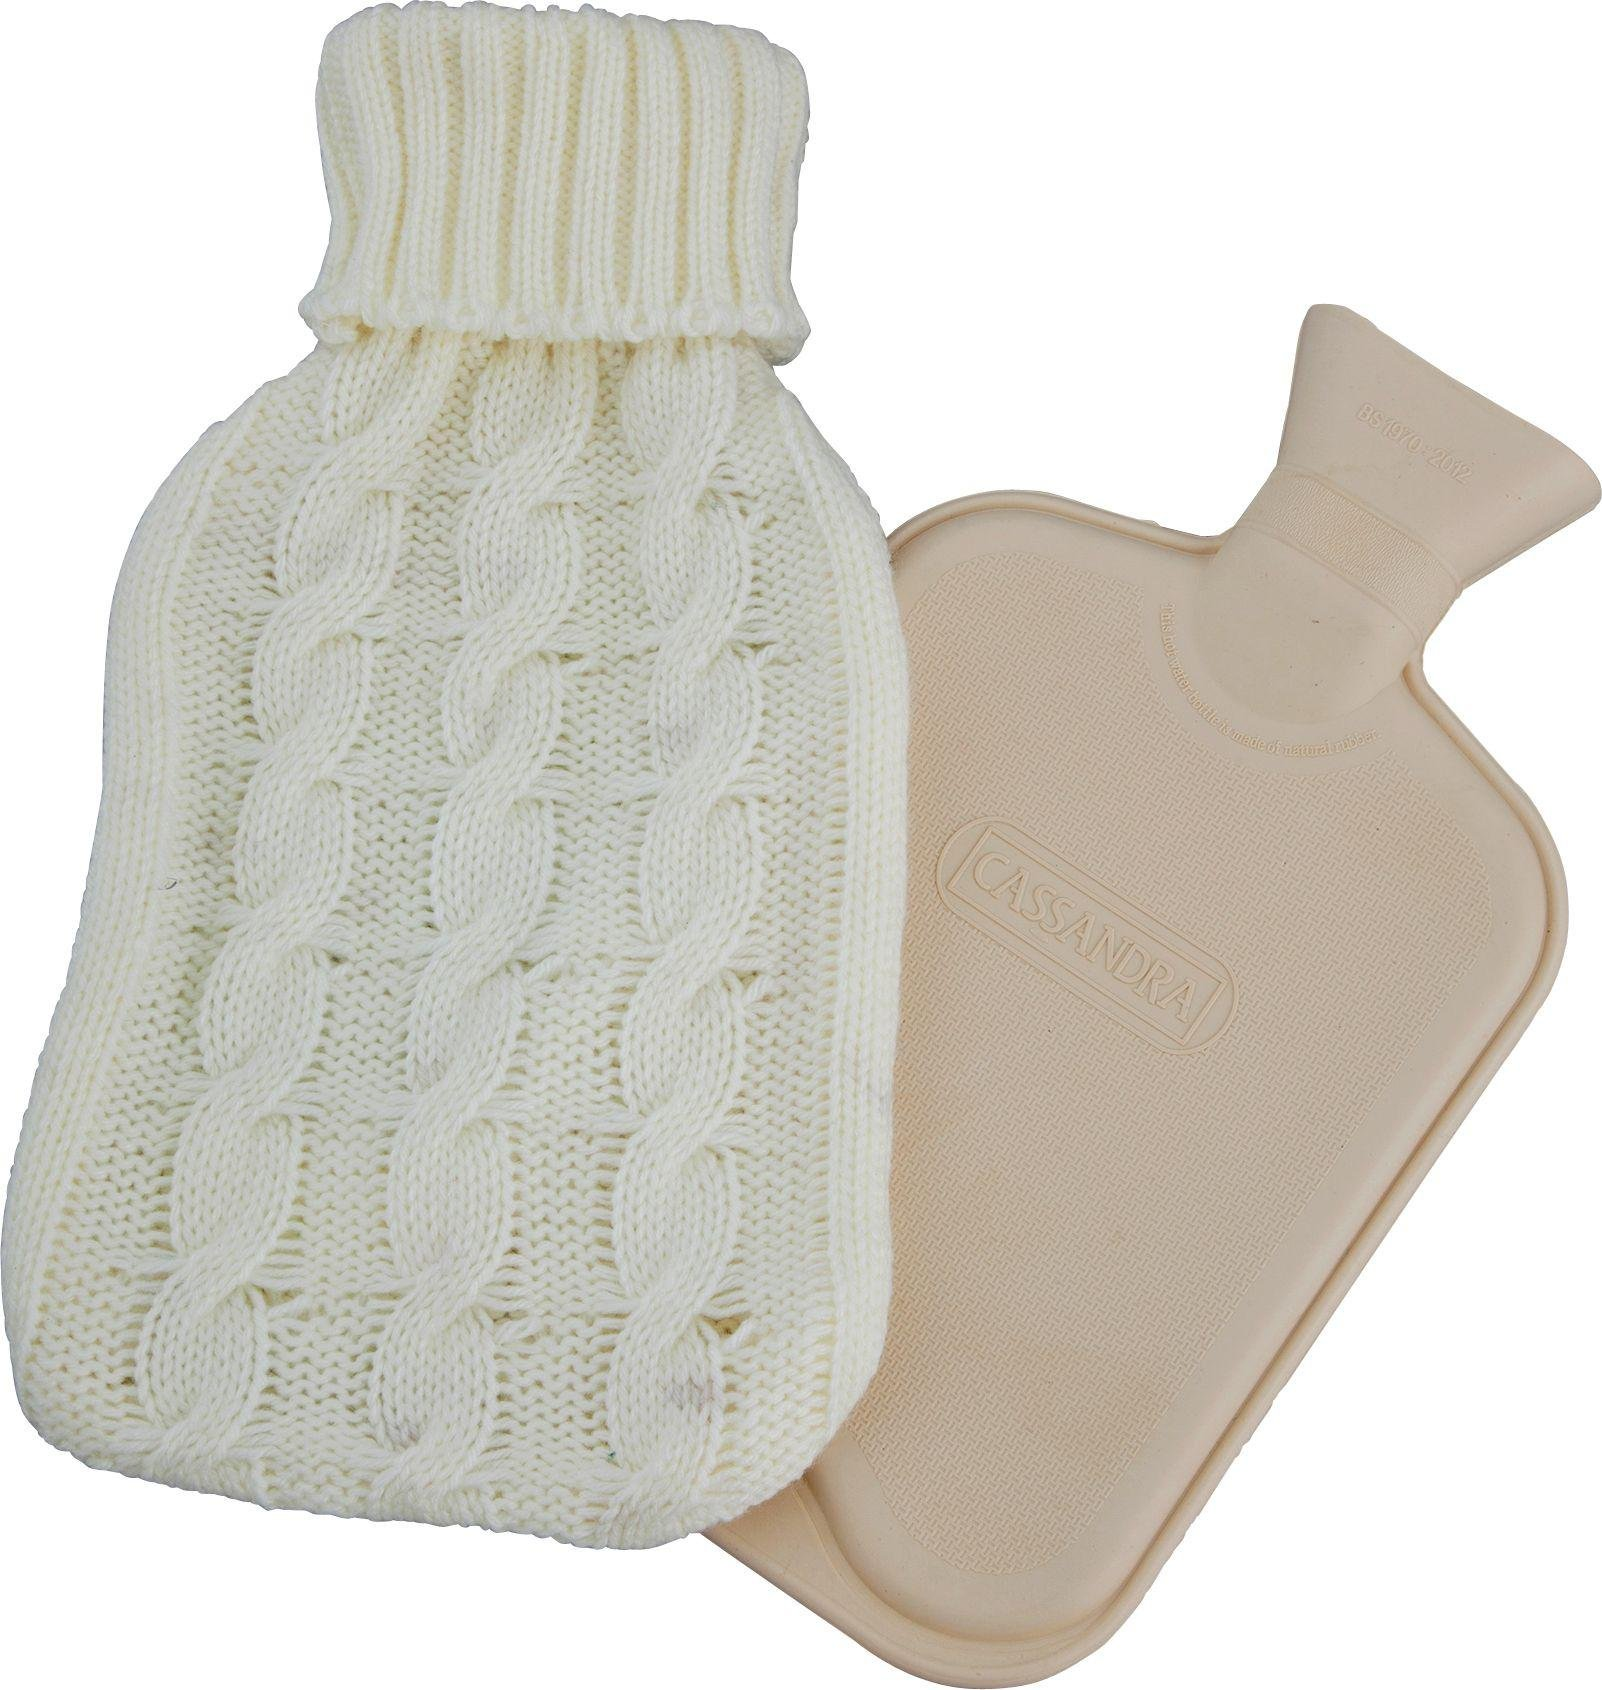 Cassandra - Hot Water Bottle with Chunky Knit Cover